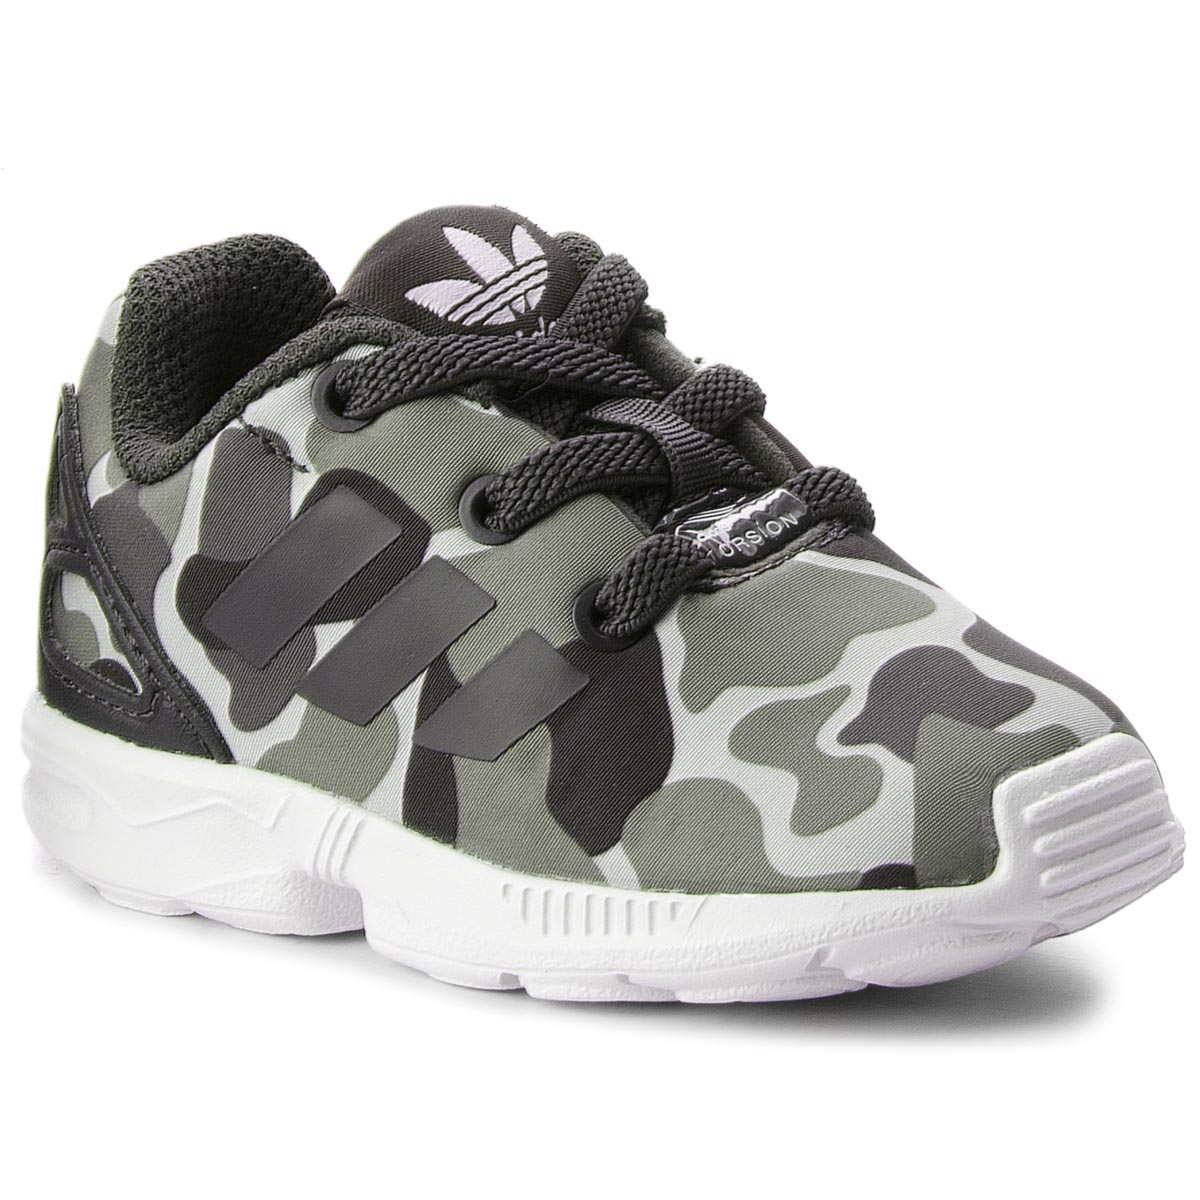 best sneakers 69500 3fd25 Shoes adidas Zx Flux El I AQ1744 Carbon Carbon Ftwwht